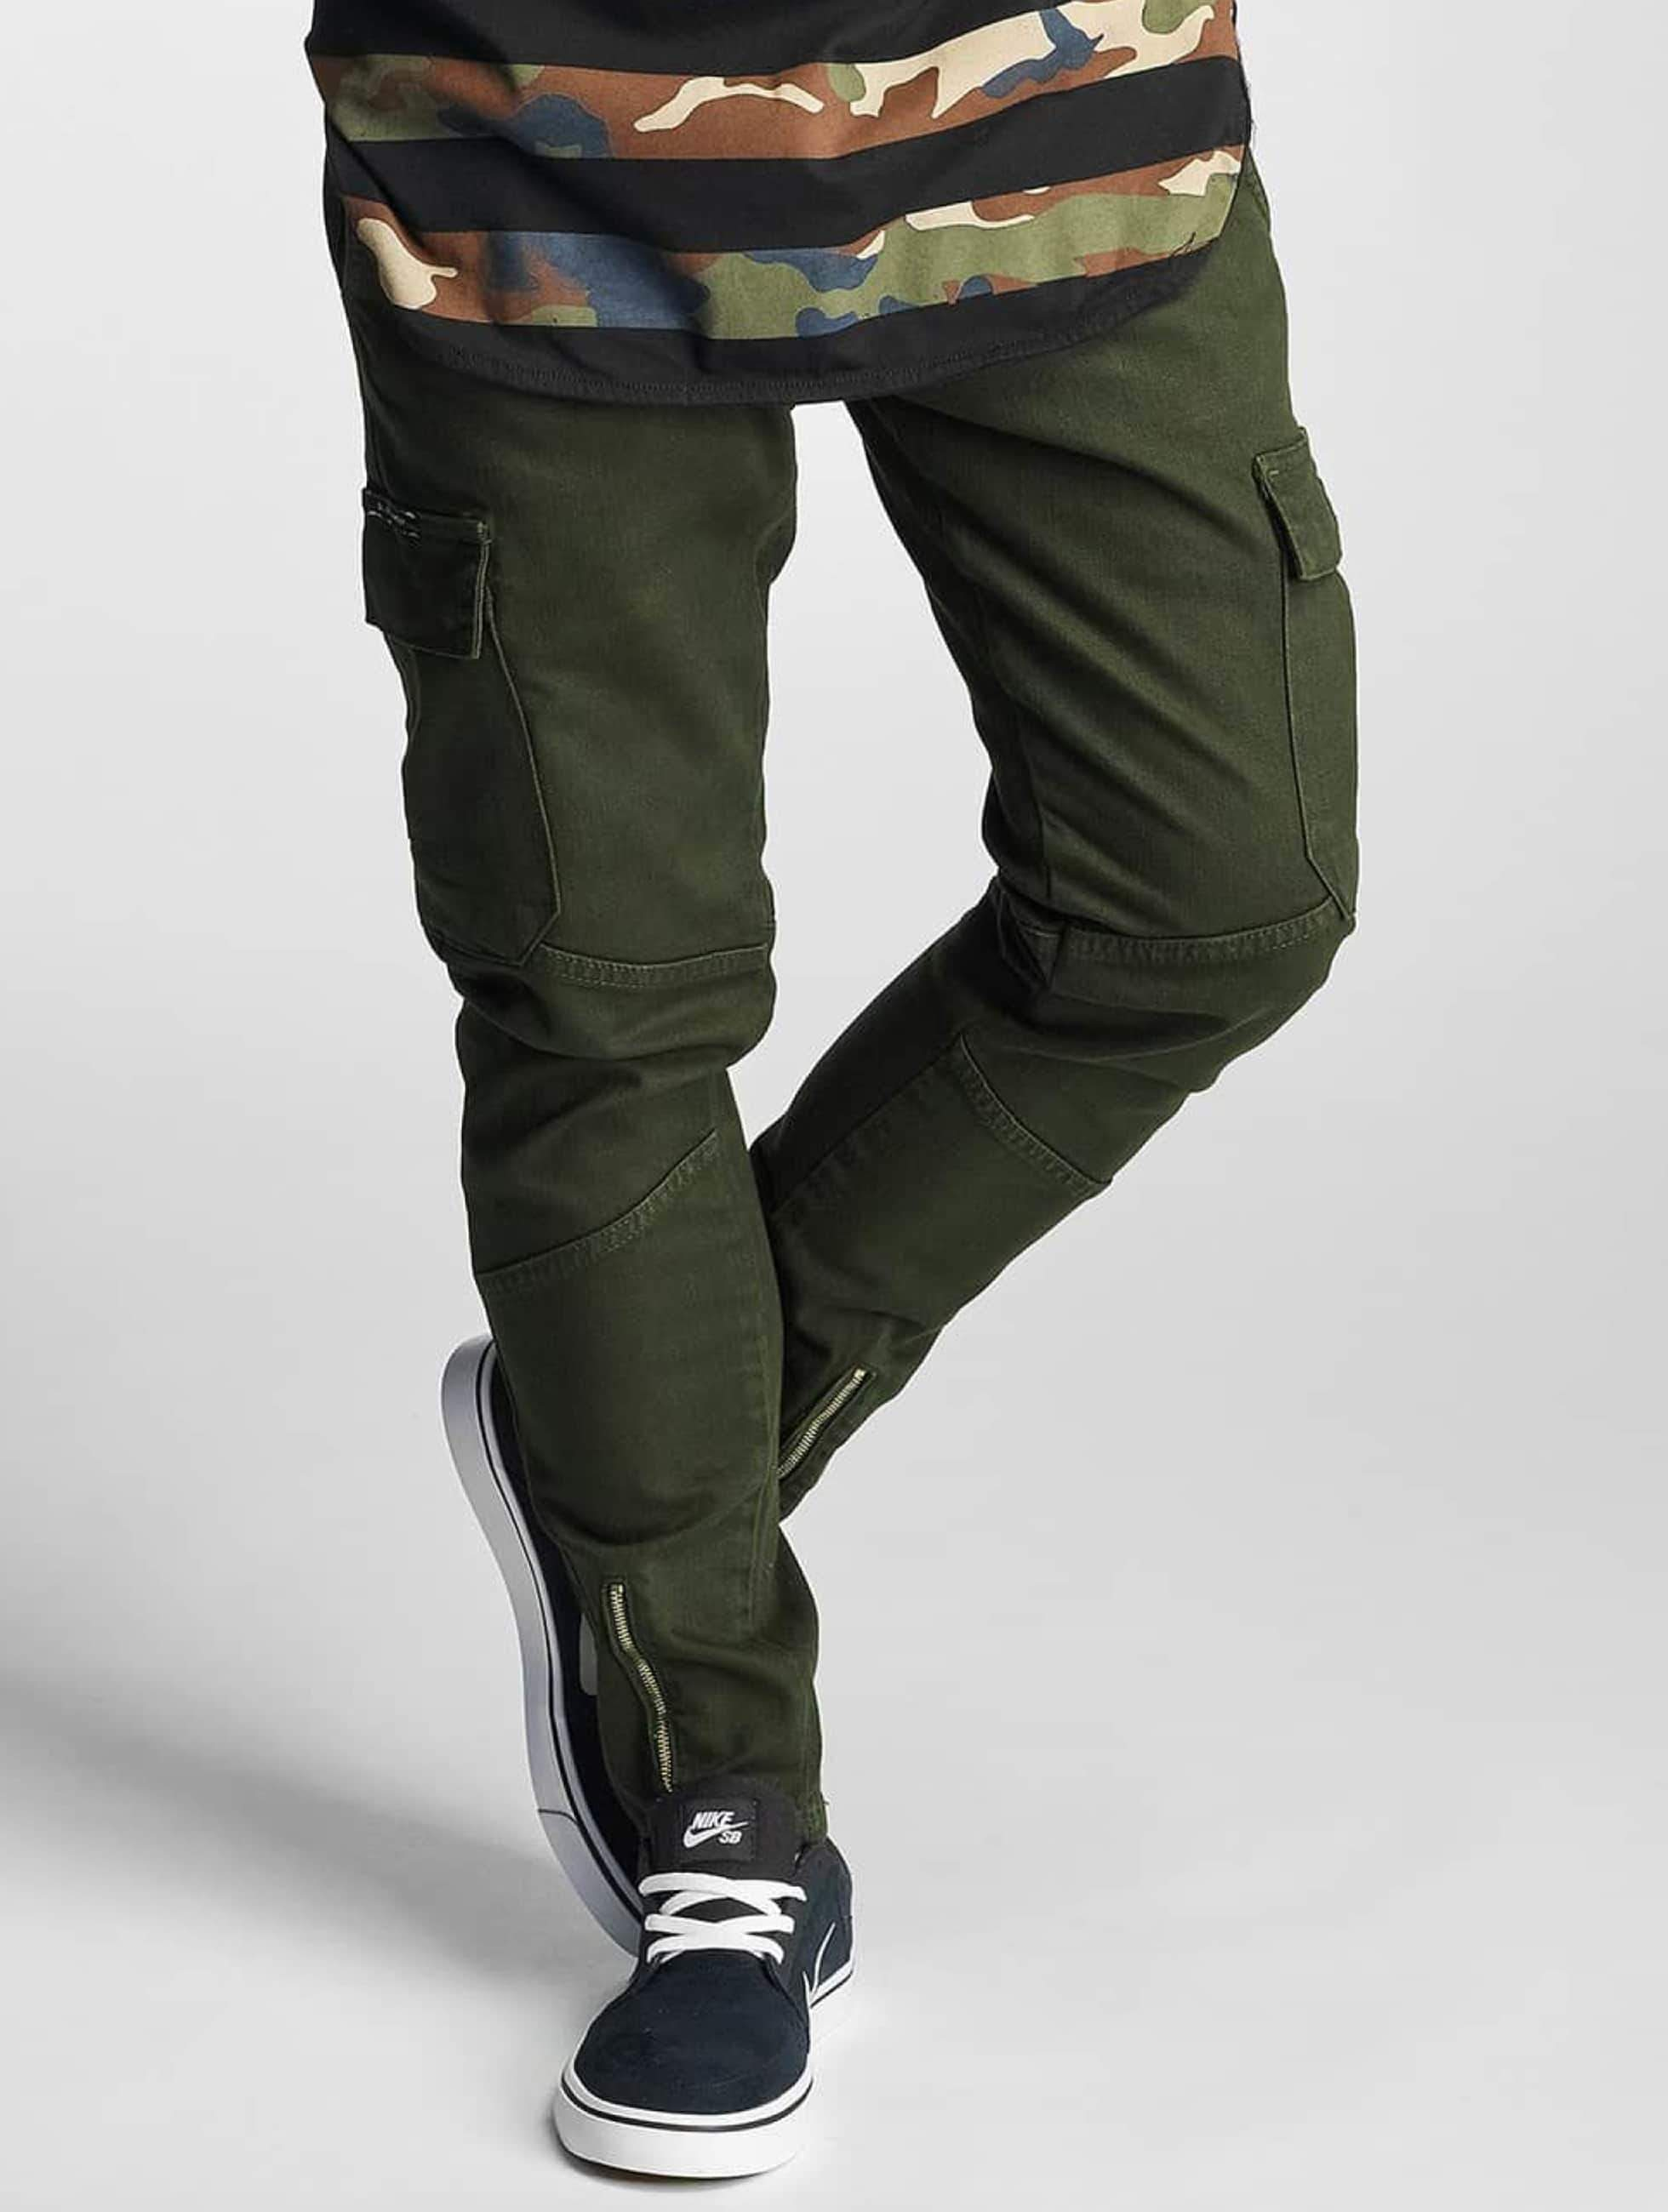 2Y / Slim Fit Jeans Adres in olive W 34